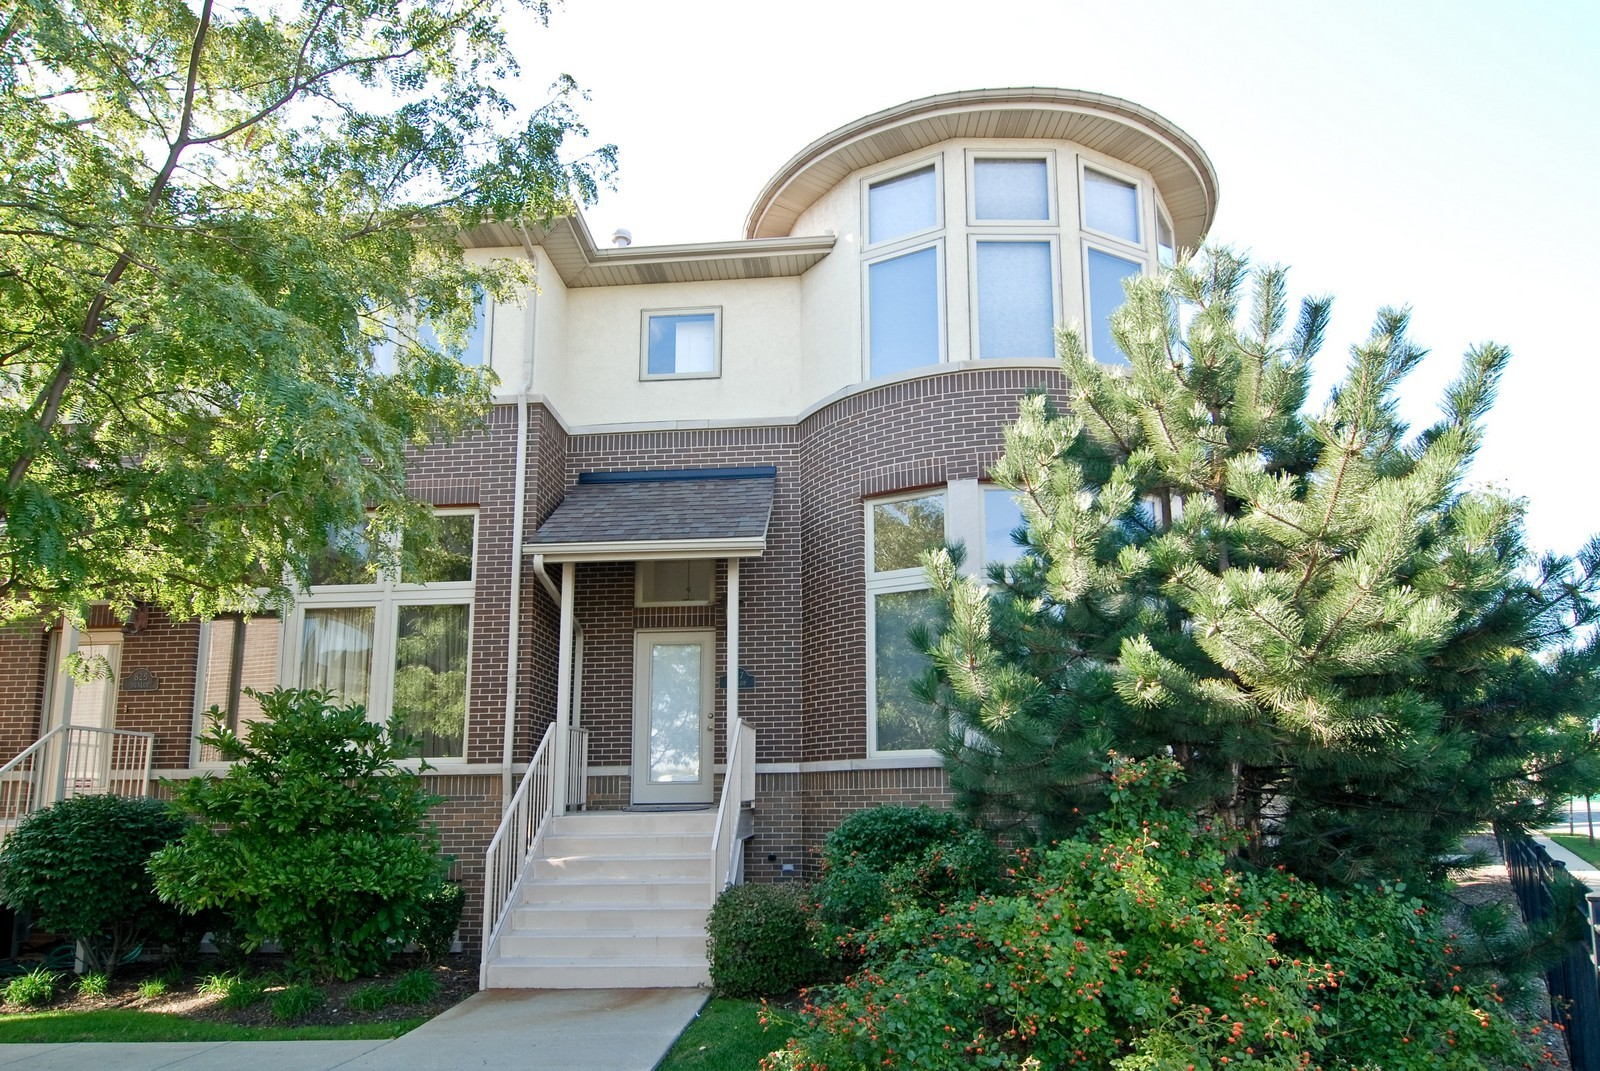 Real Estate Photography - 827 Dunlop, Forest Park, IL, 60130 - Front View